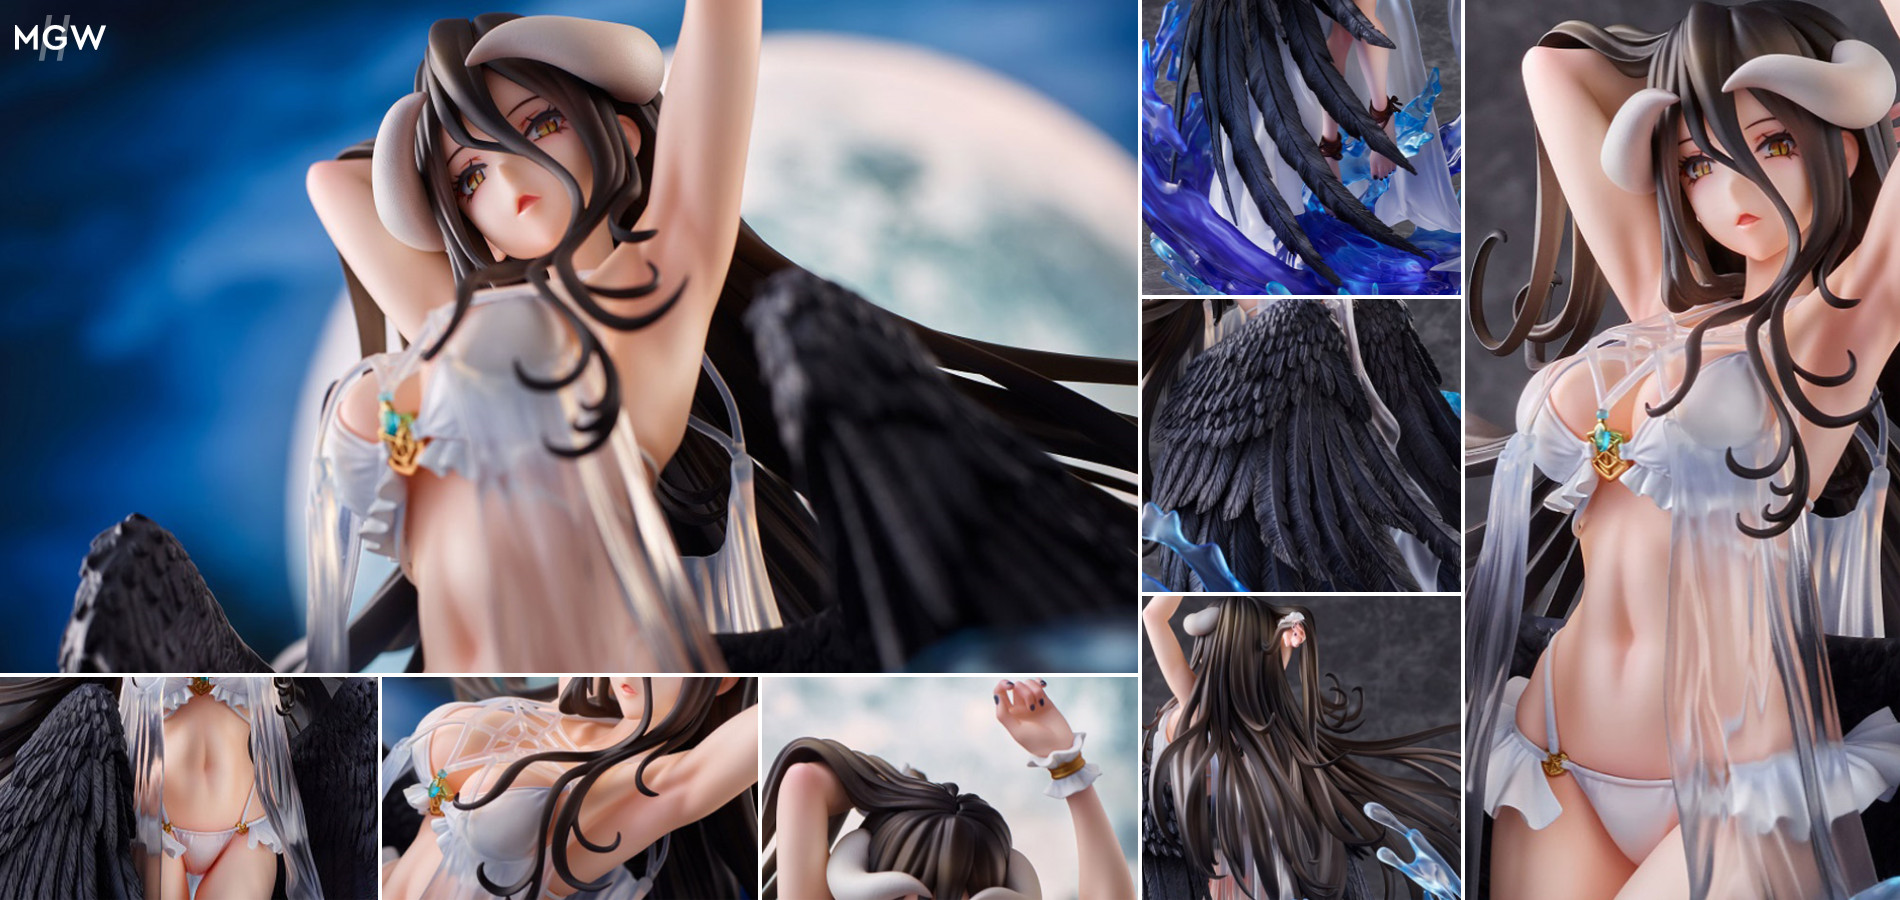 Overlord Albedo Swimsuit Ver. by SHIBUYA SCRAMBLE FIGURE MyGrailWatch Anime Figure Guide